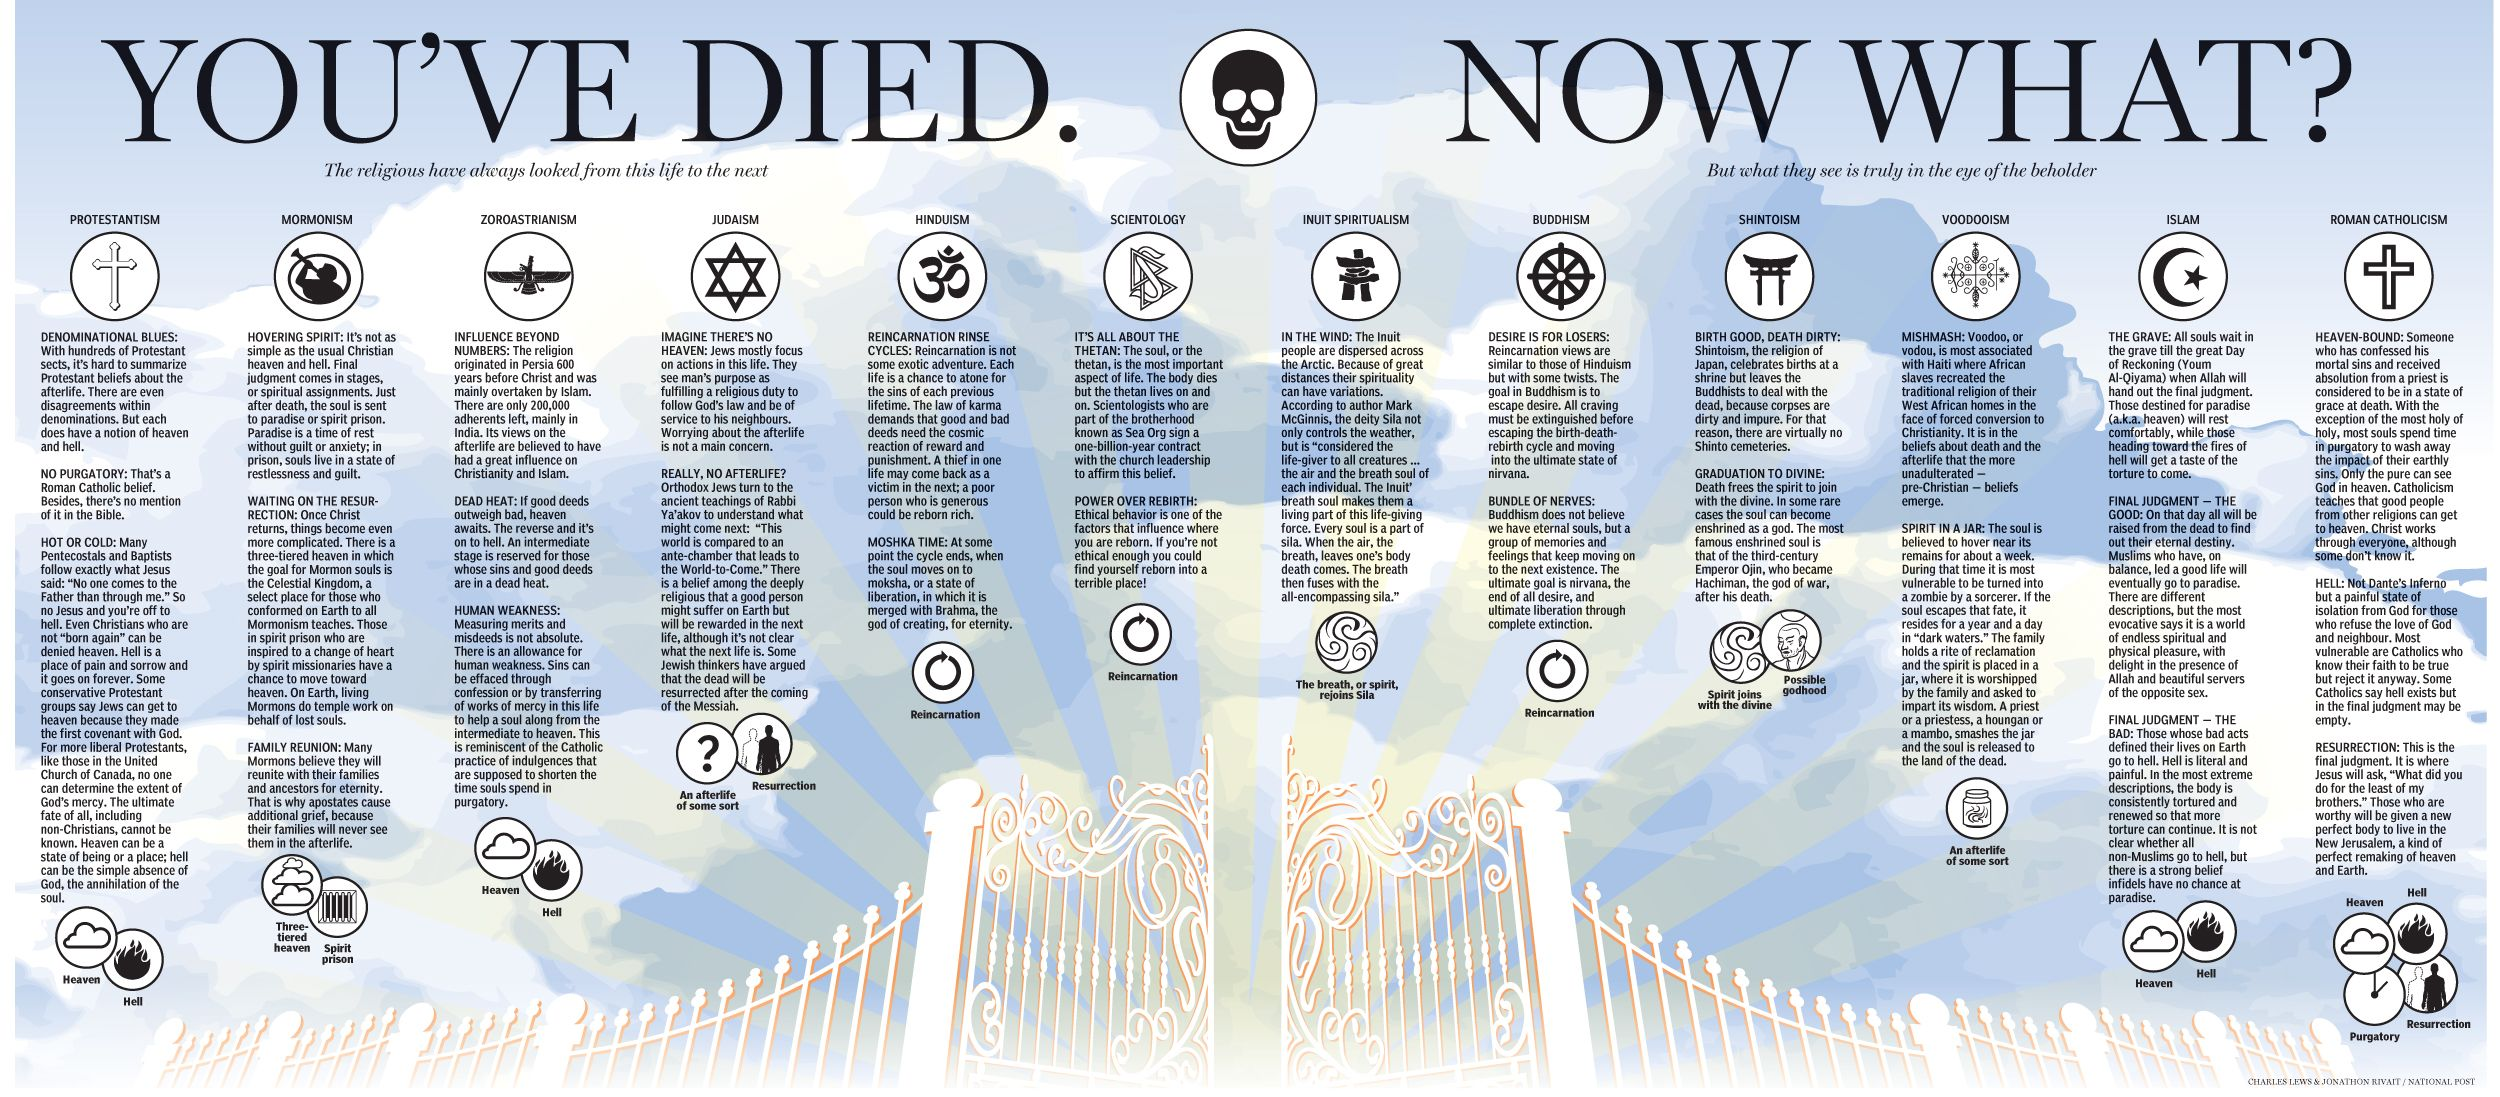 What do wiccans believe about the afterlife